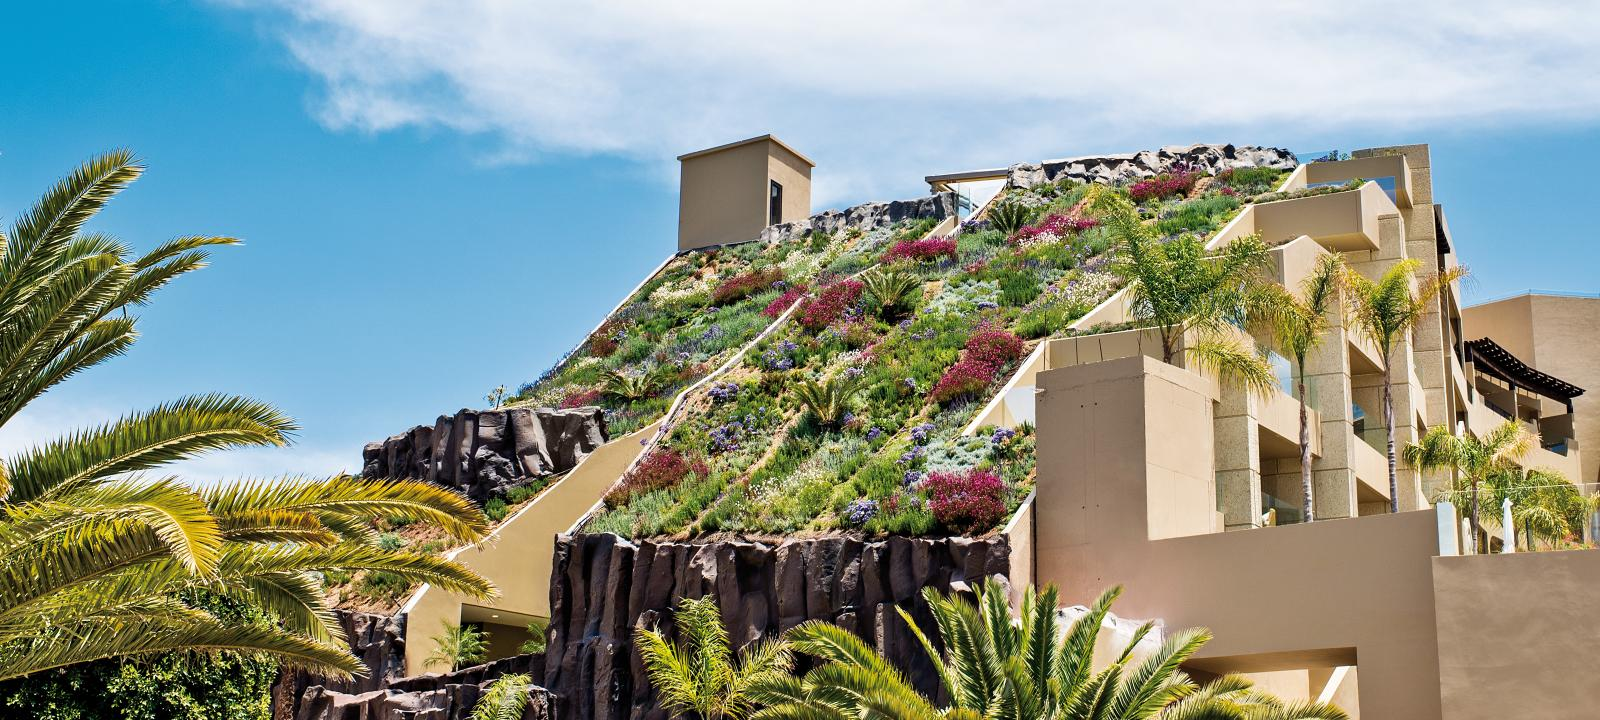 Steep pitched green roof in full blossom